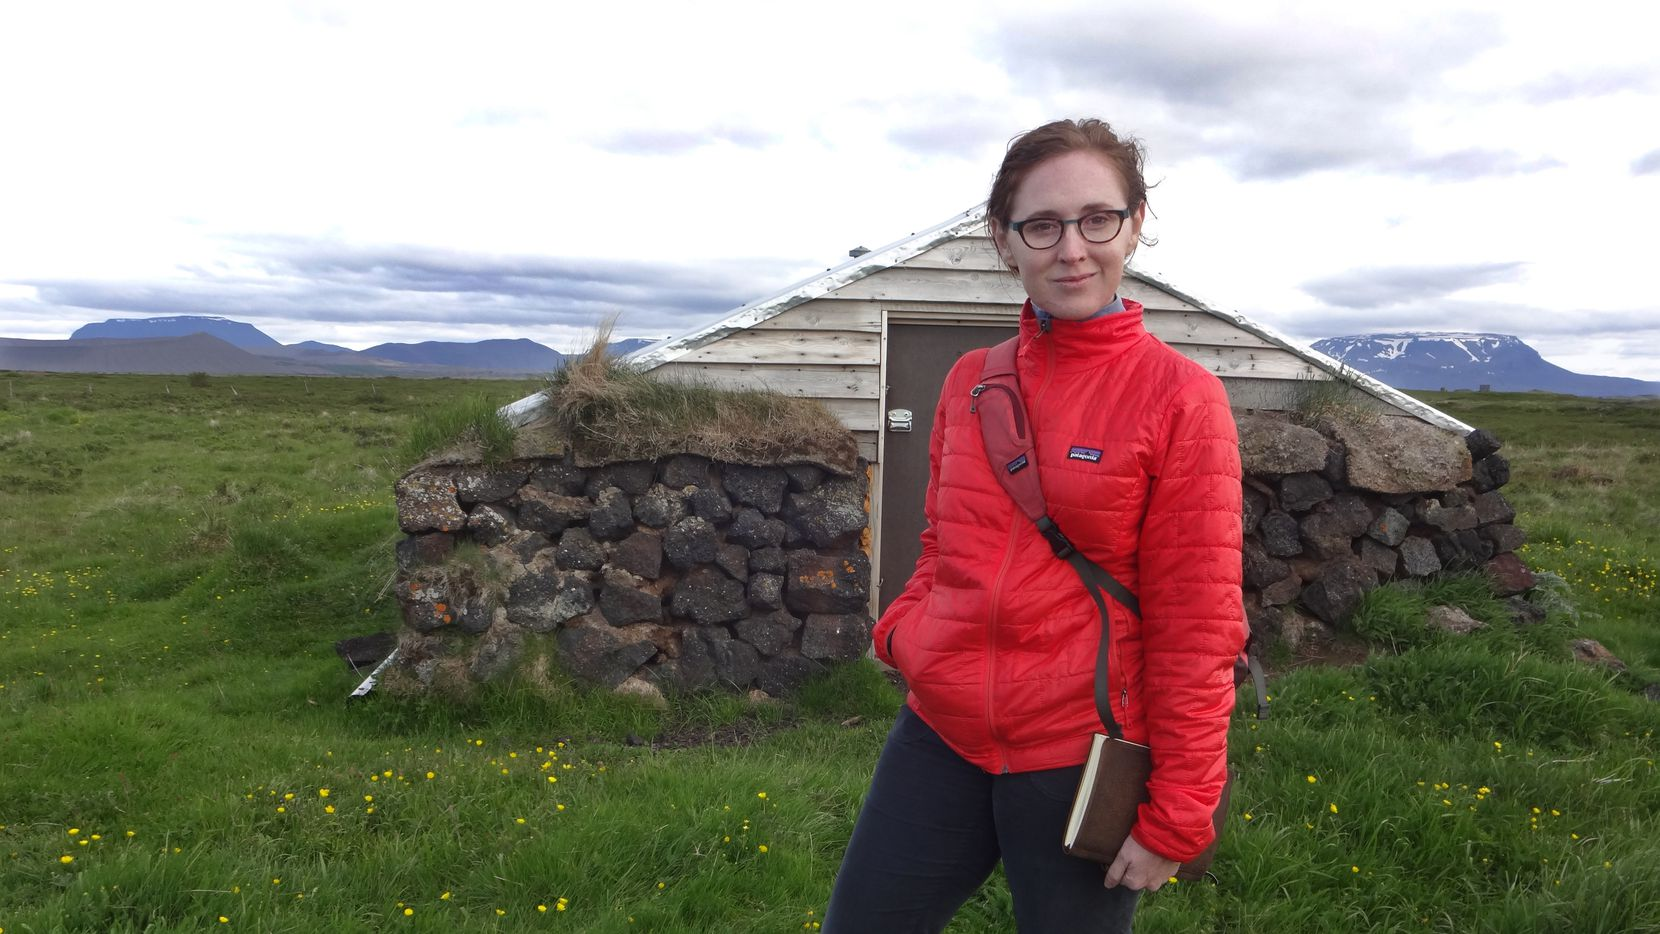 Author Kendra Greene with her notebook, in front of a smoke shed on Ytri-Nesl ndum farm, a stone's throw from the family-run Fuglasafn Sigurgeirs (Sigurgeir's Bird Museum), M vatn, July 5, 2015.